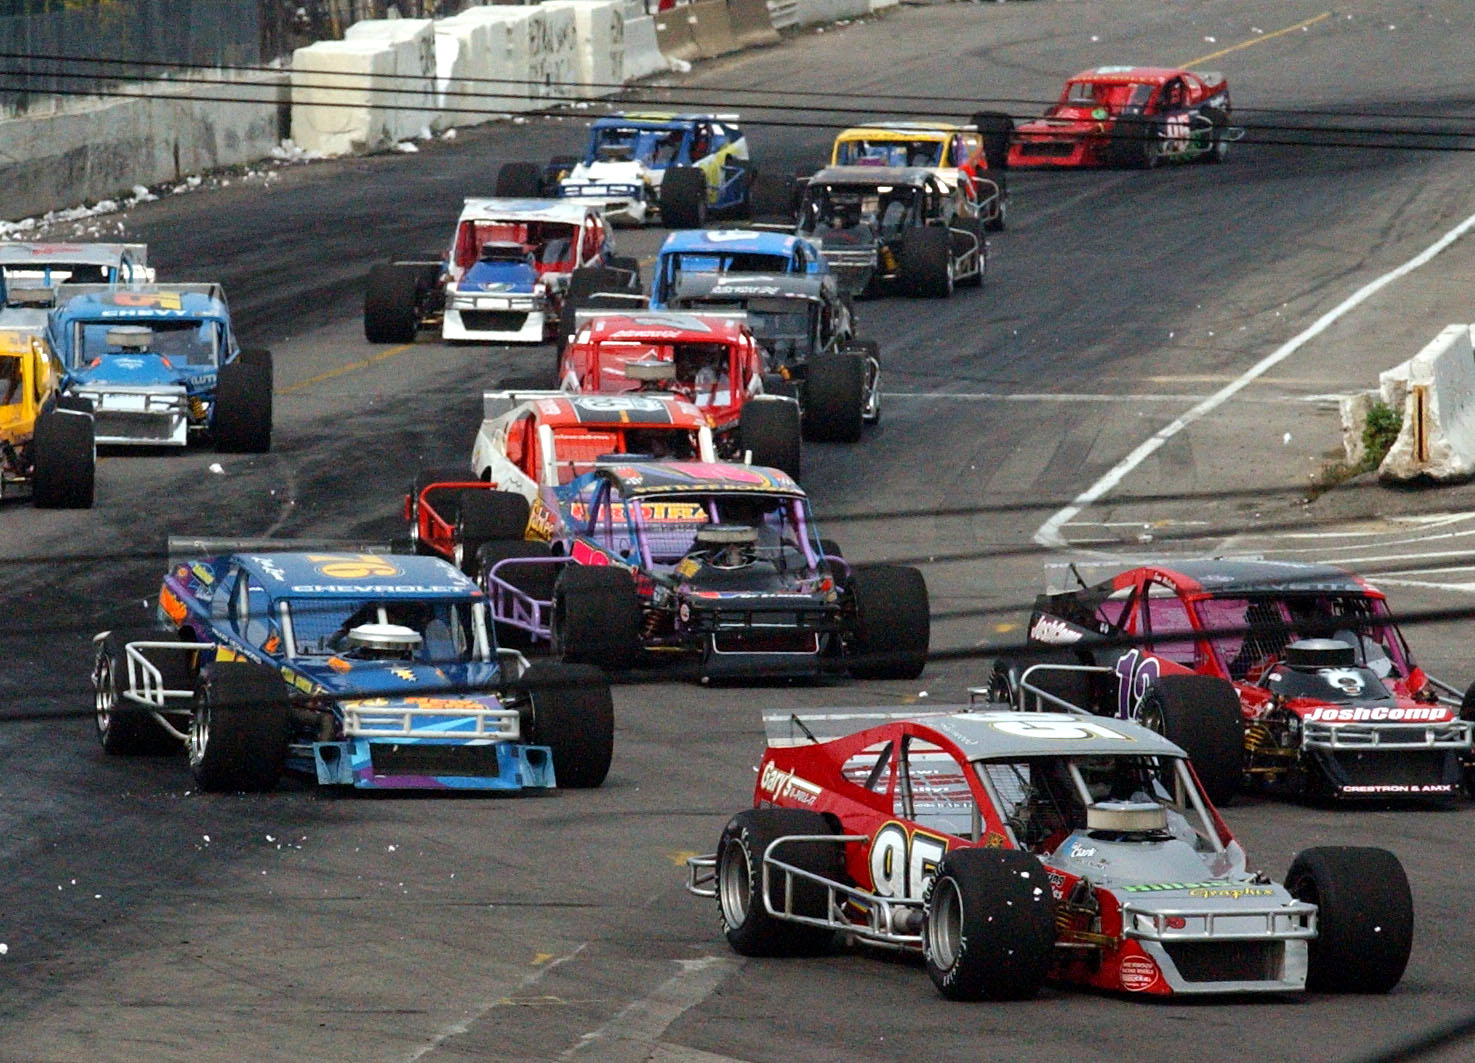 Elma's Joe Skotnicki continues to mold Race of Champions series